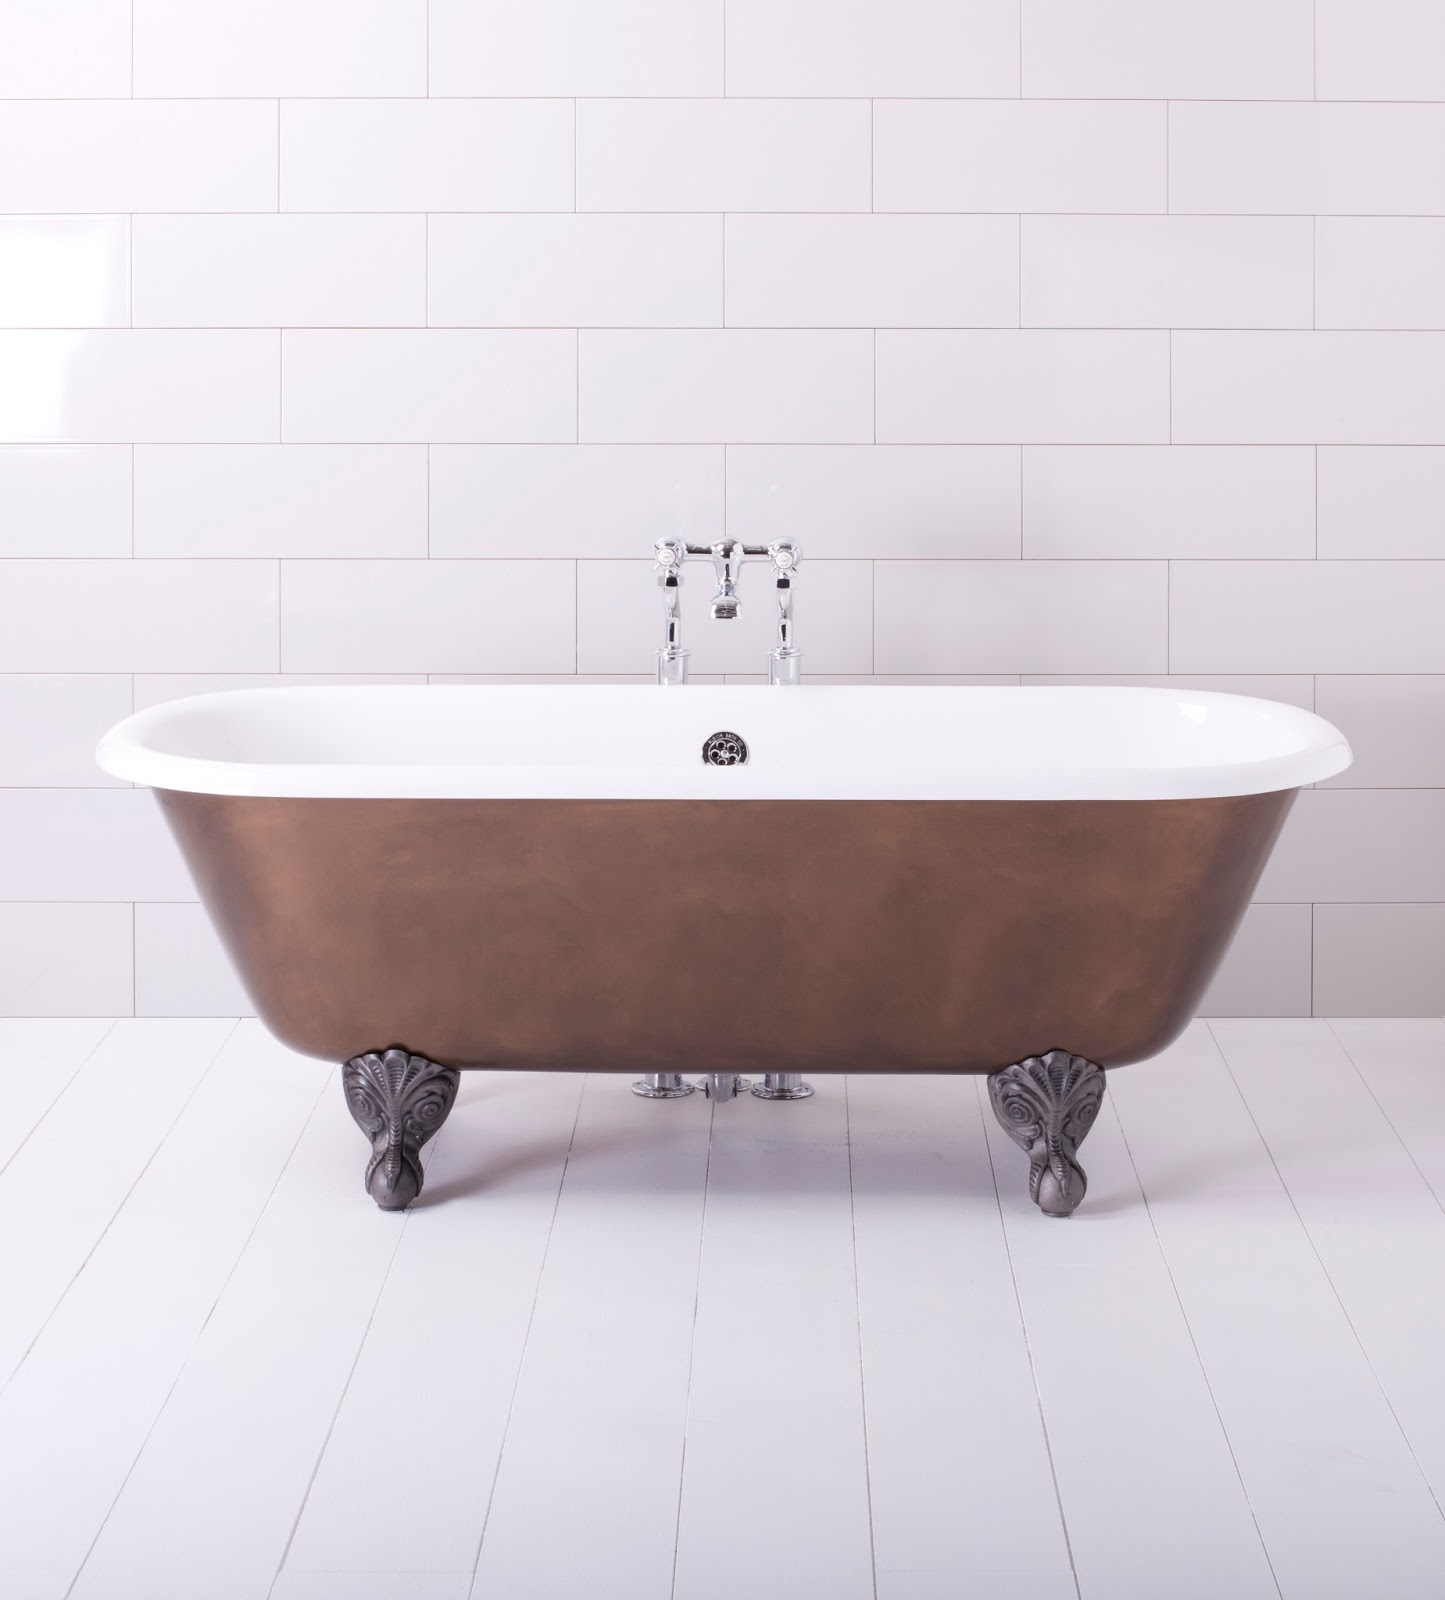 the albion bath company ltd albion bath co large bath tubs 1800mm long or more. Black Bedroom Furniture Sets. Home Design Ideas